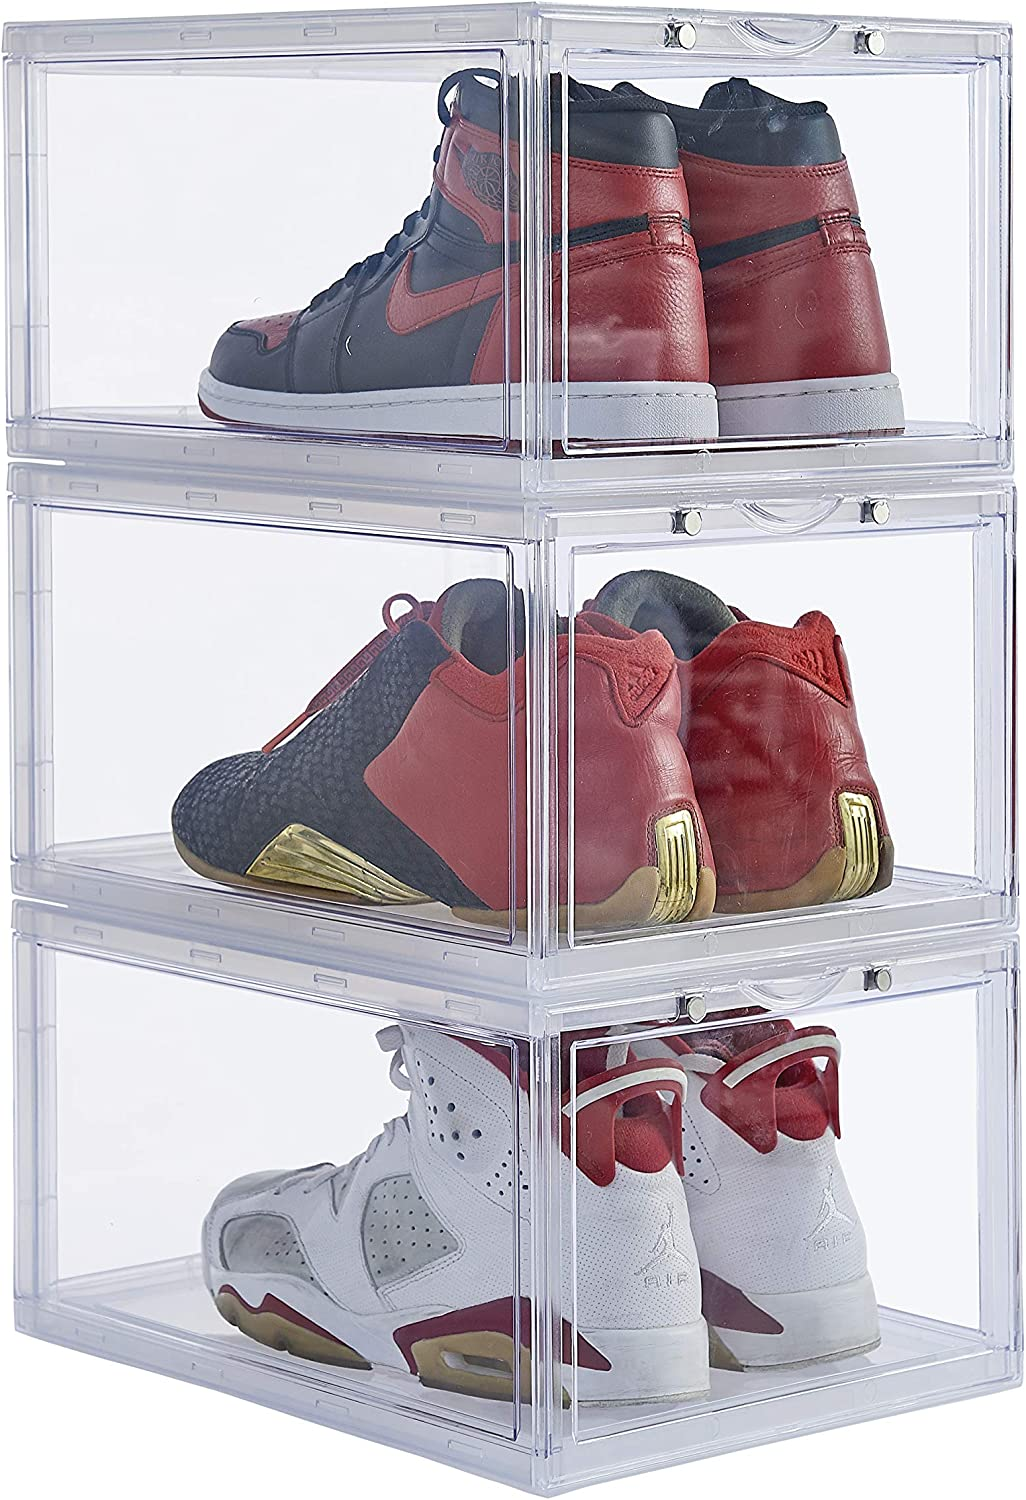 Stackable Shoe Organizer Clear Plastic 3 Pack Shoe Boxes for Display Shoes Sneakers Storage Clear